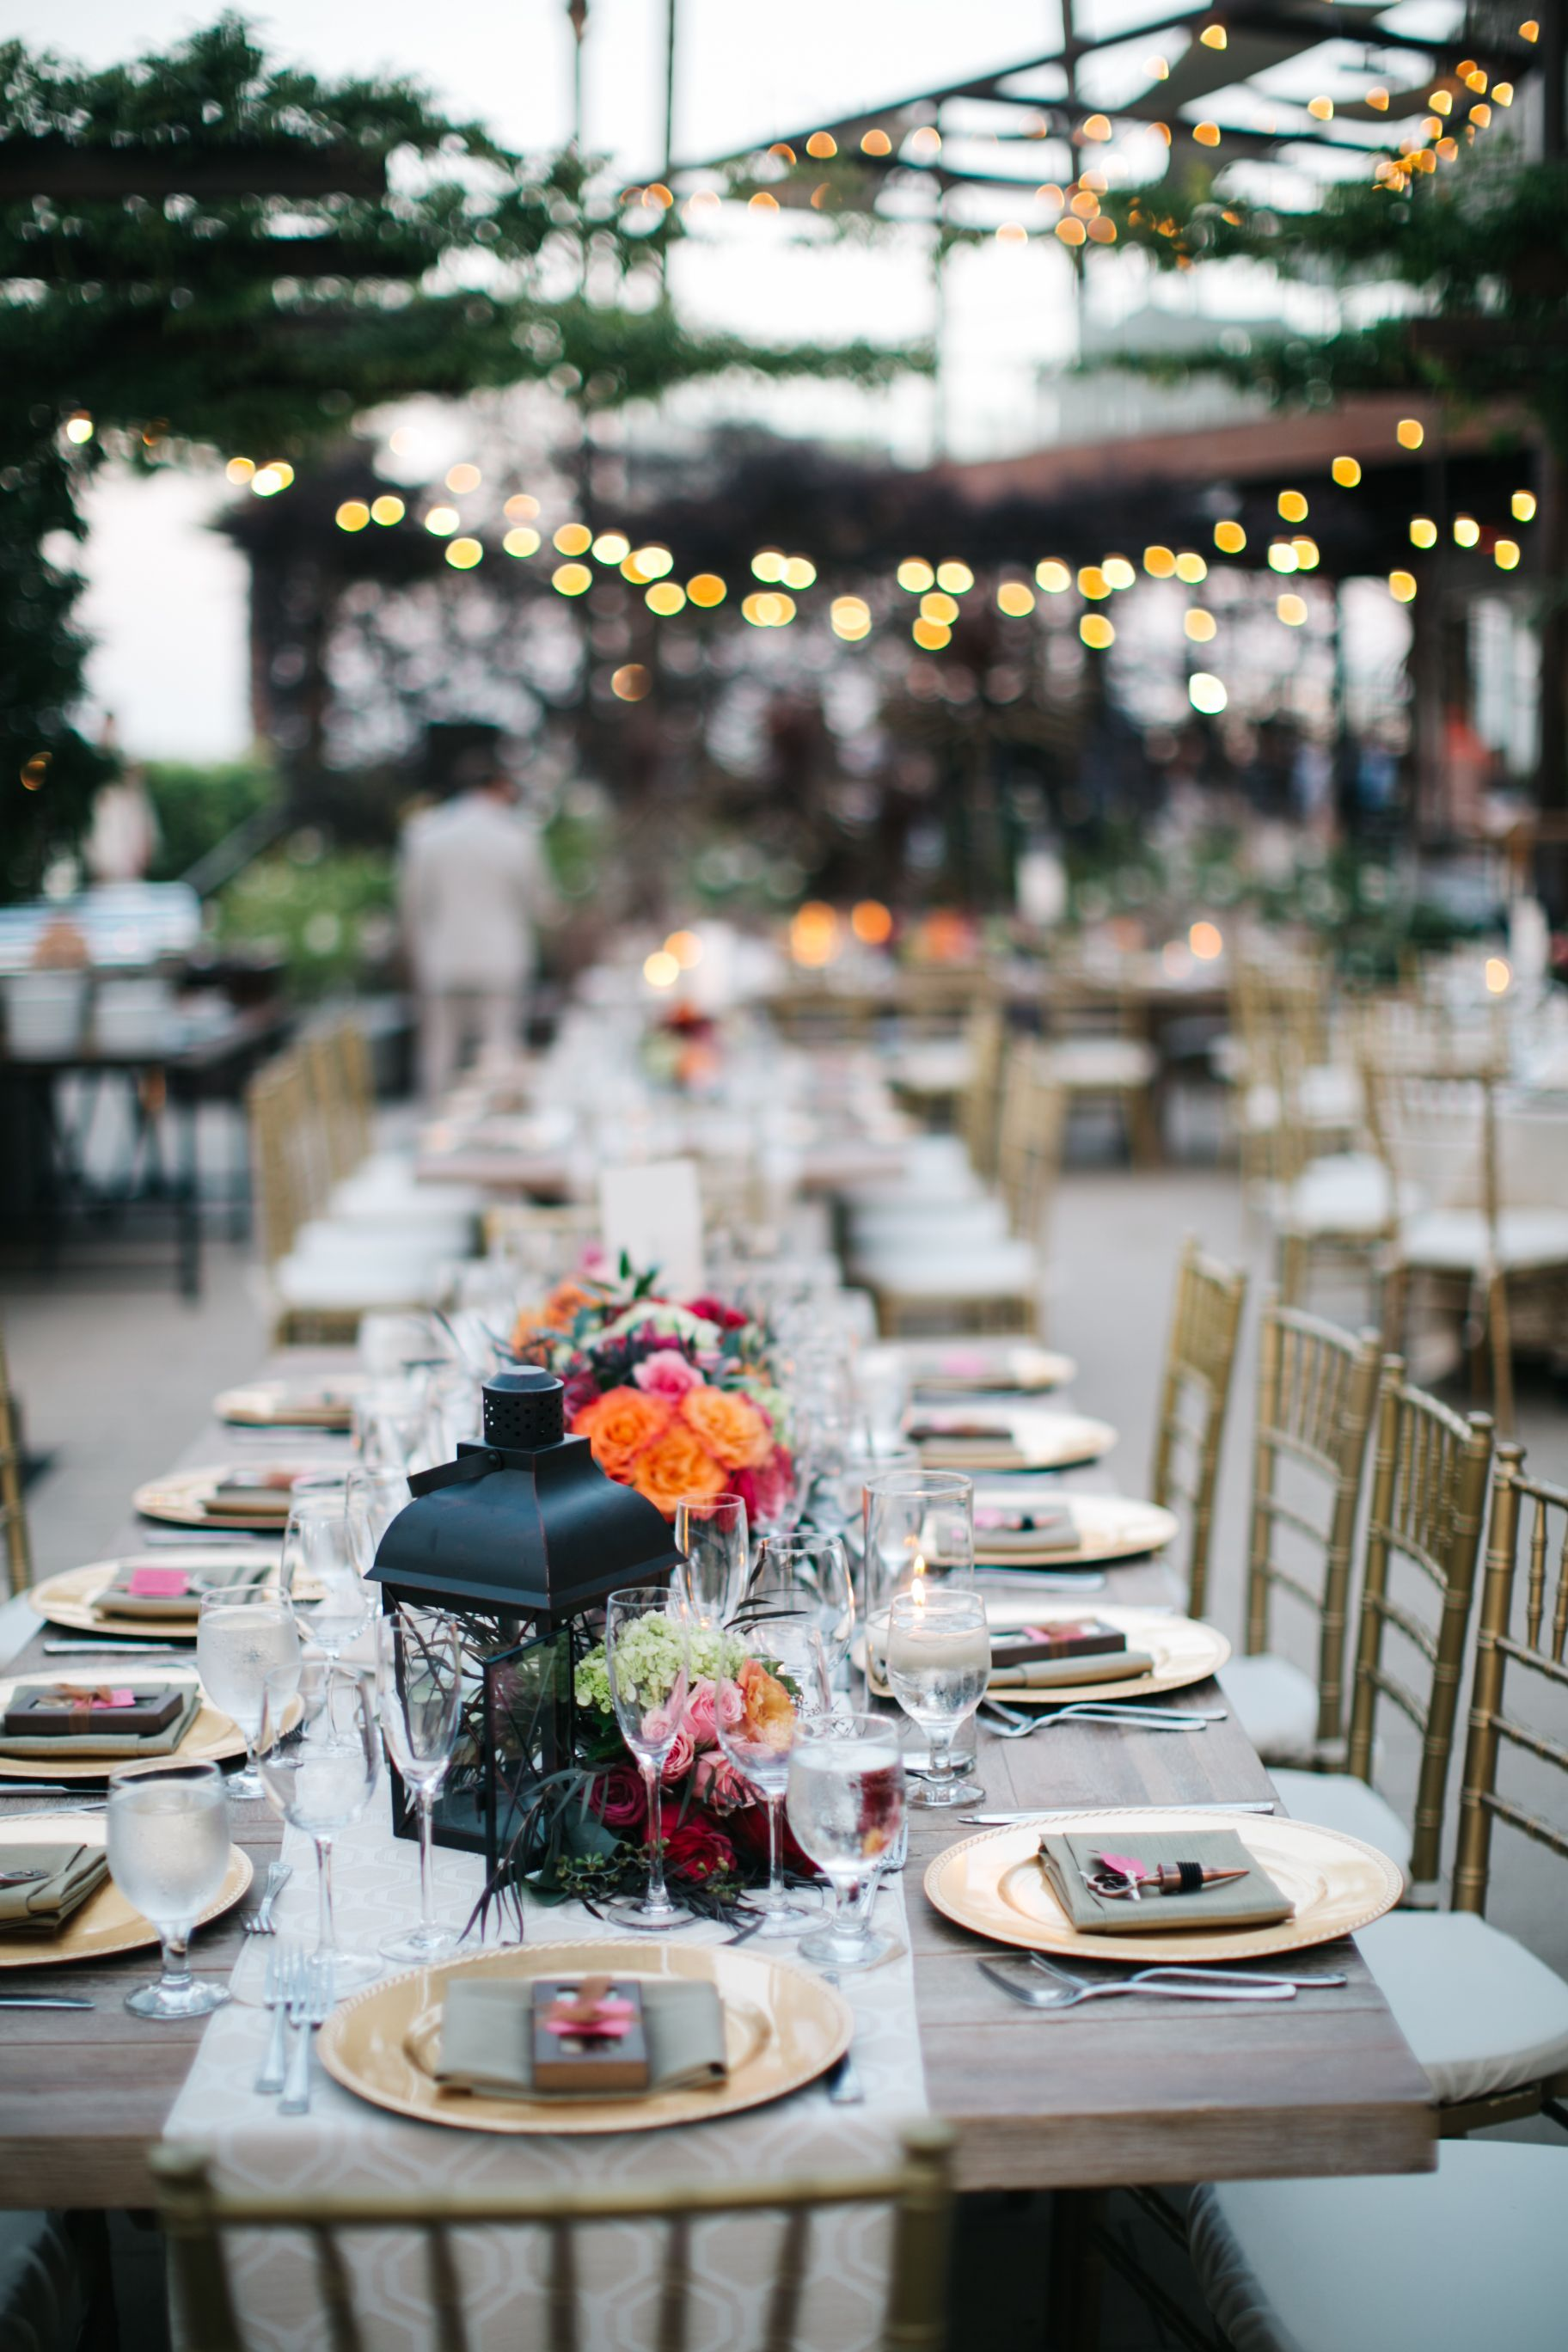 How much does wedding catering cost? (With images